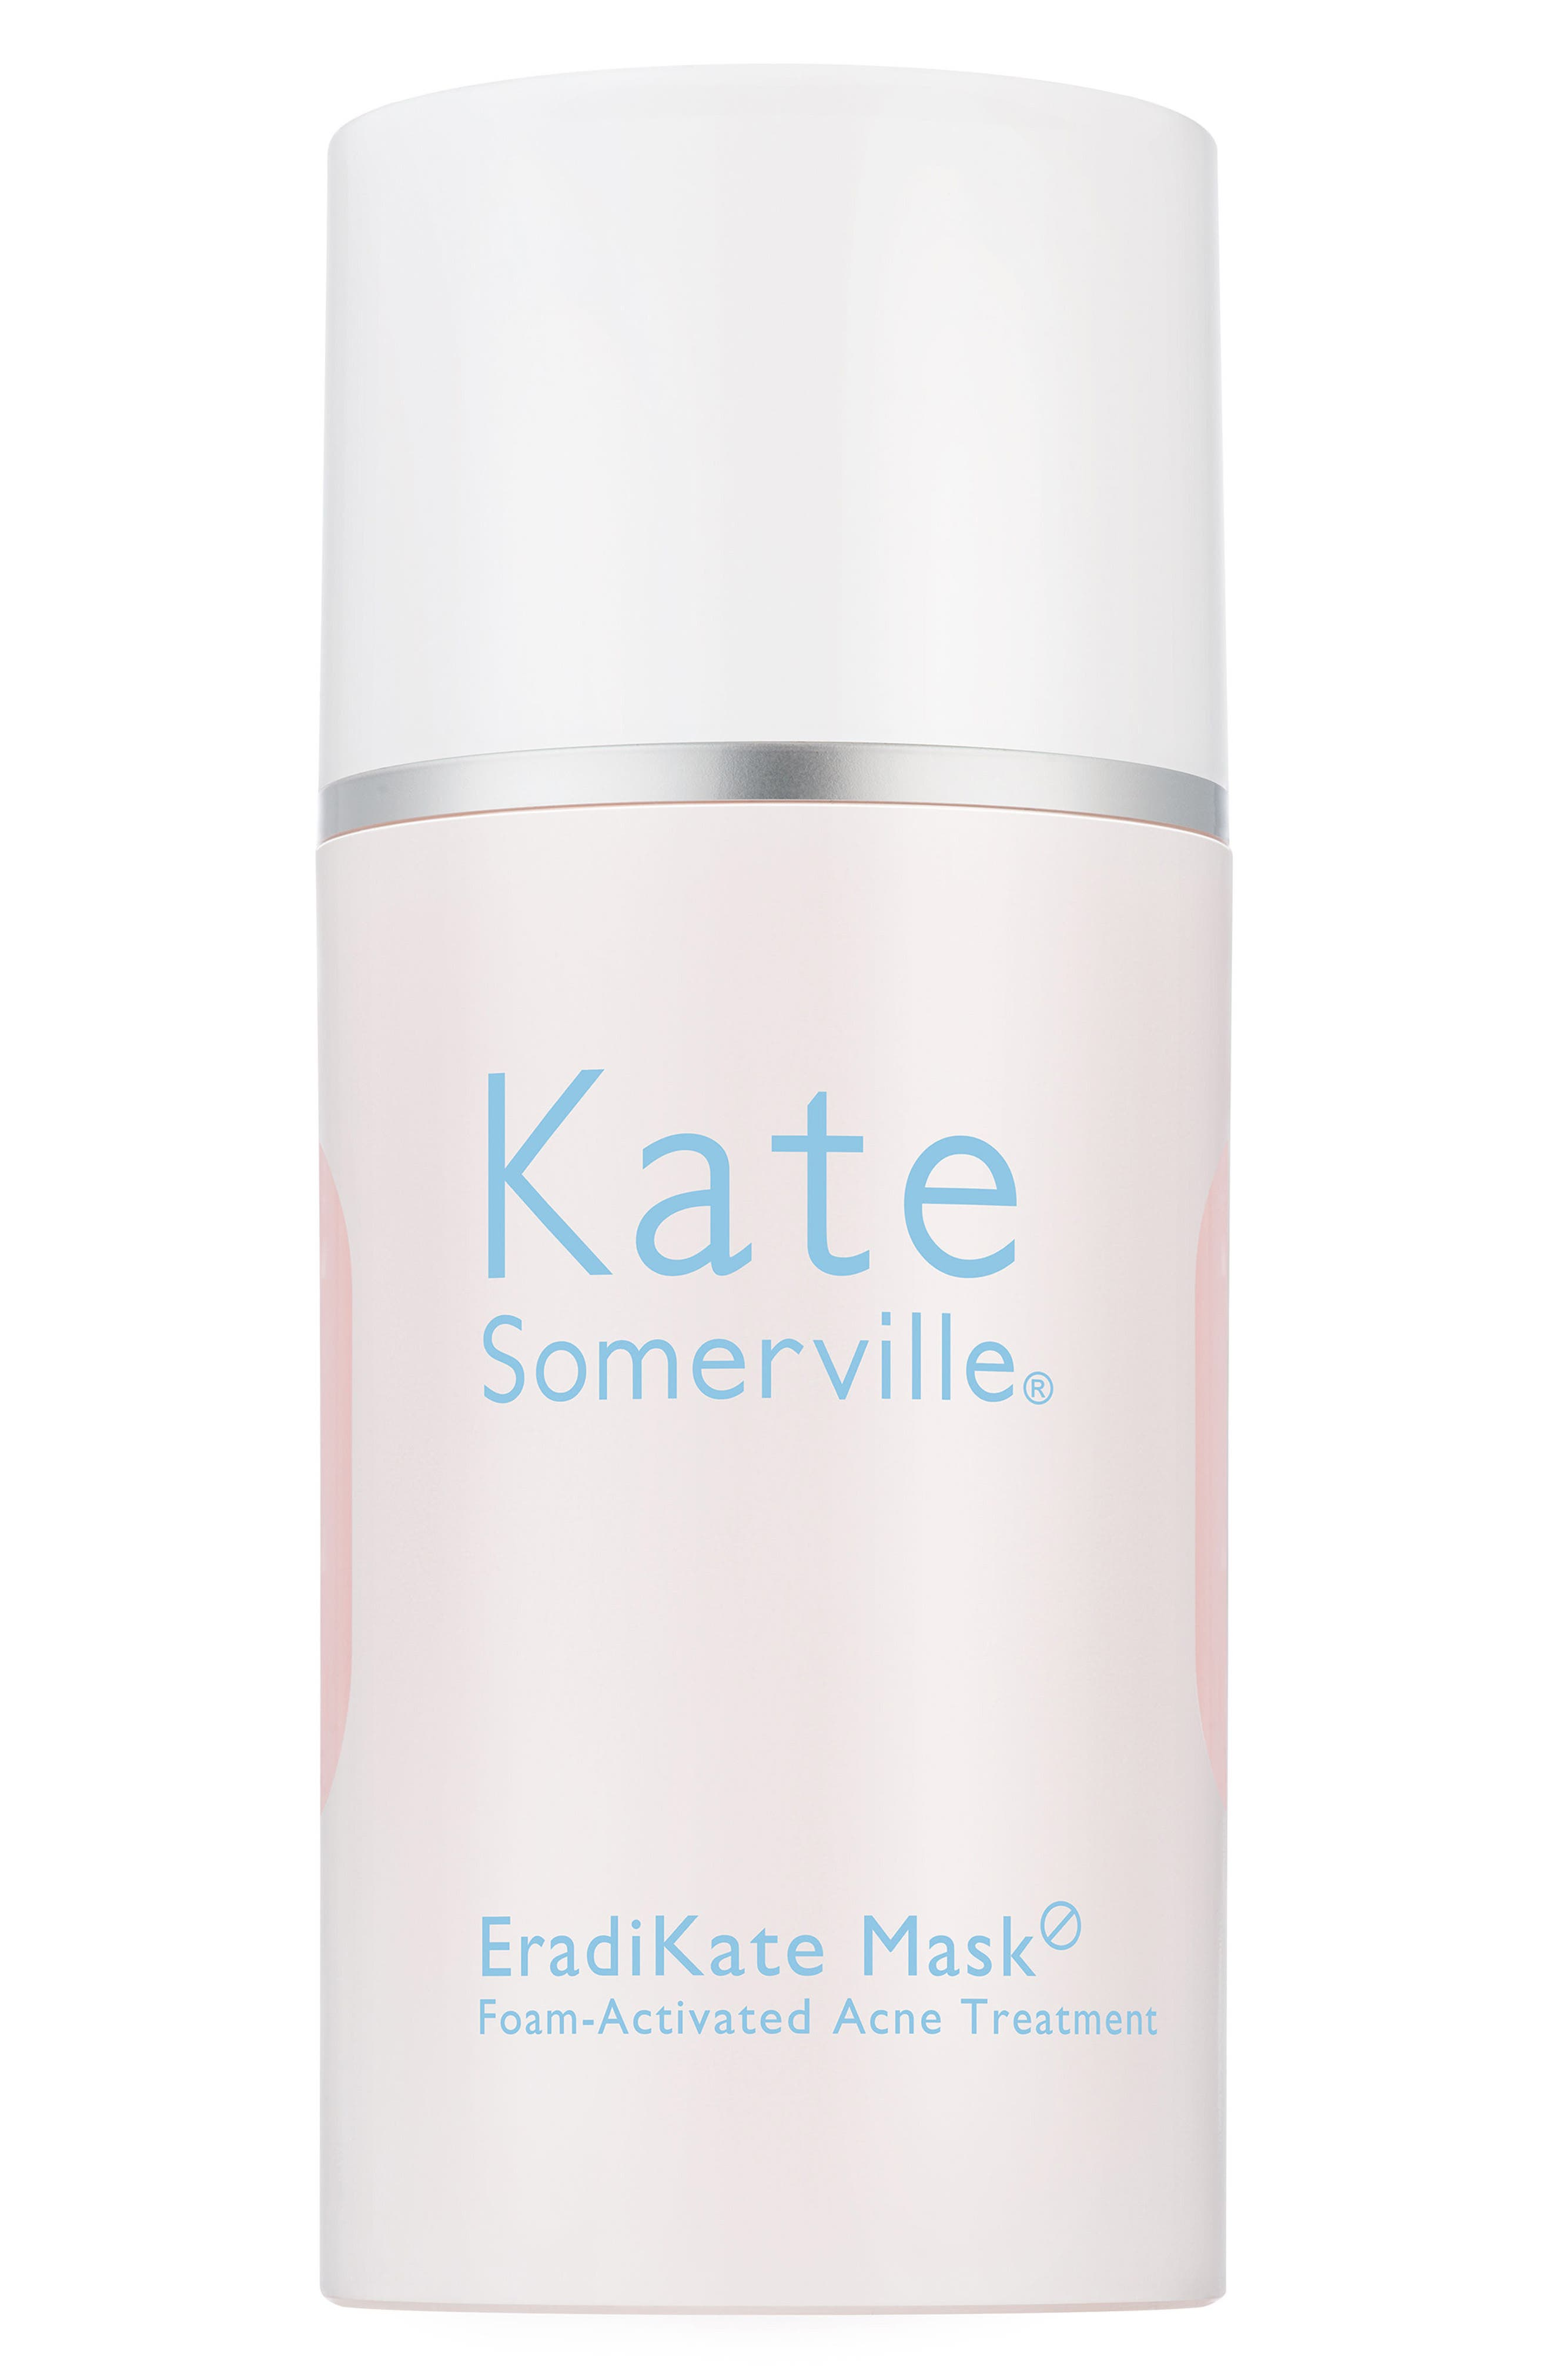 KATE SOMERVILLE® 'EradiKate' Mask Foam-Activated Acne Treatment